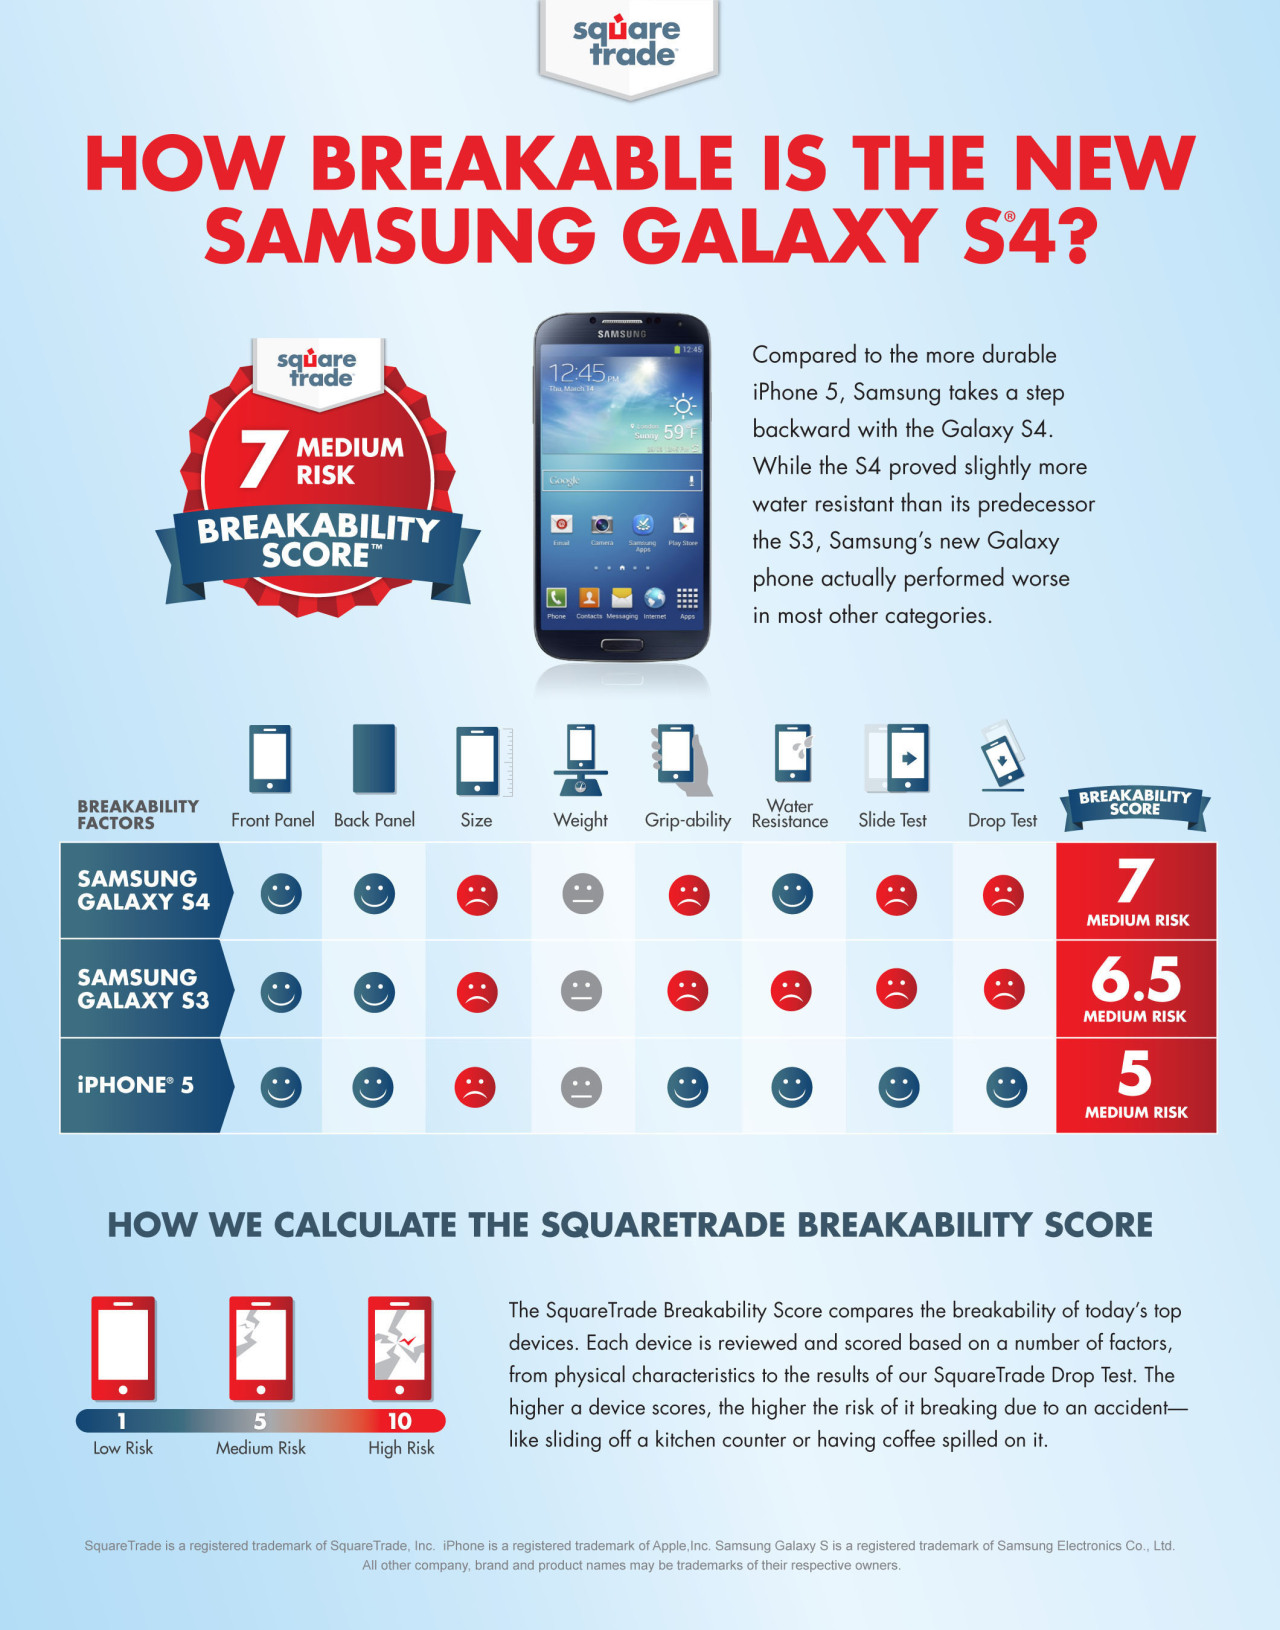 How breakable is the new Samsung Galaxy S4? Compared to the more durable iPhone 5, Samsung takes a step backward with the Galaxy S4.While the S4 proved slightly more water resistant than itr predecessor the S3, Samsung's new Galaxy phone actually performed worse in most other categories. (vía AllThingsD)